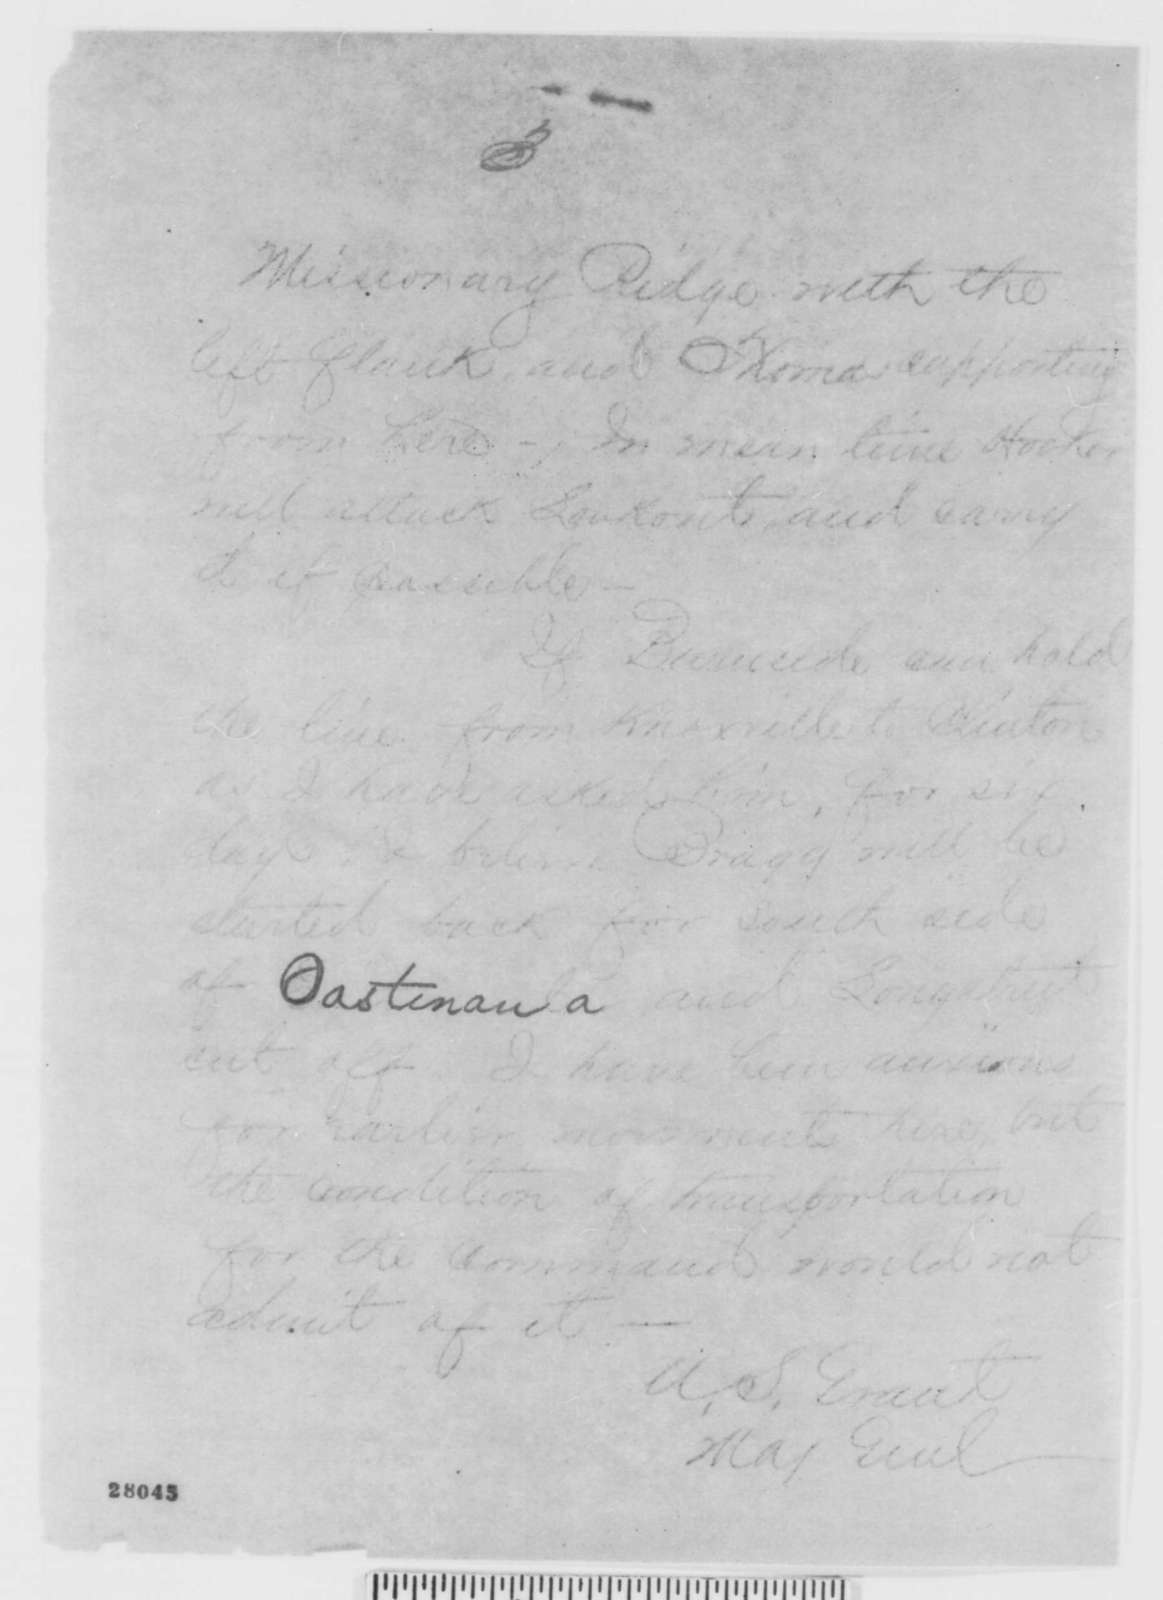 Ulysses S. Grant to Henry W. Halleck, Sunday, November 15, 1863  (Telegram concerning military affairs in Tennessee)